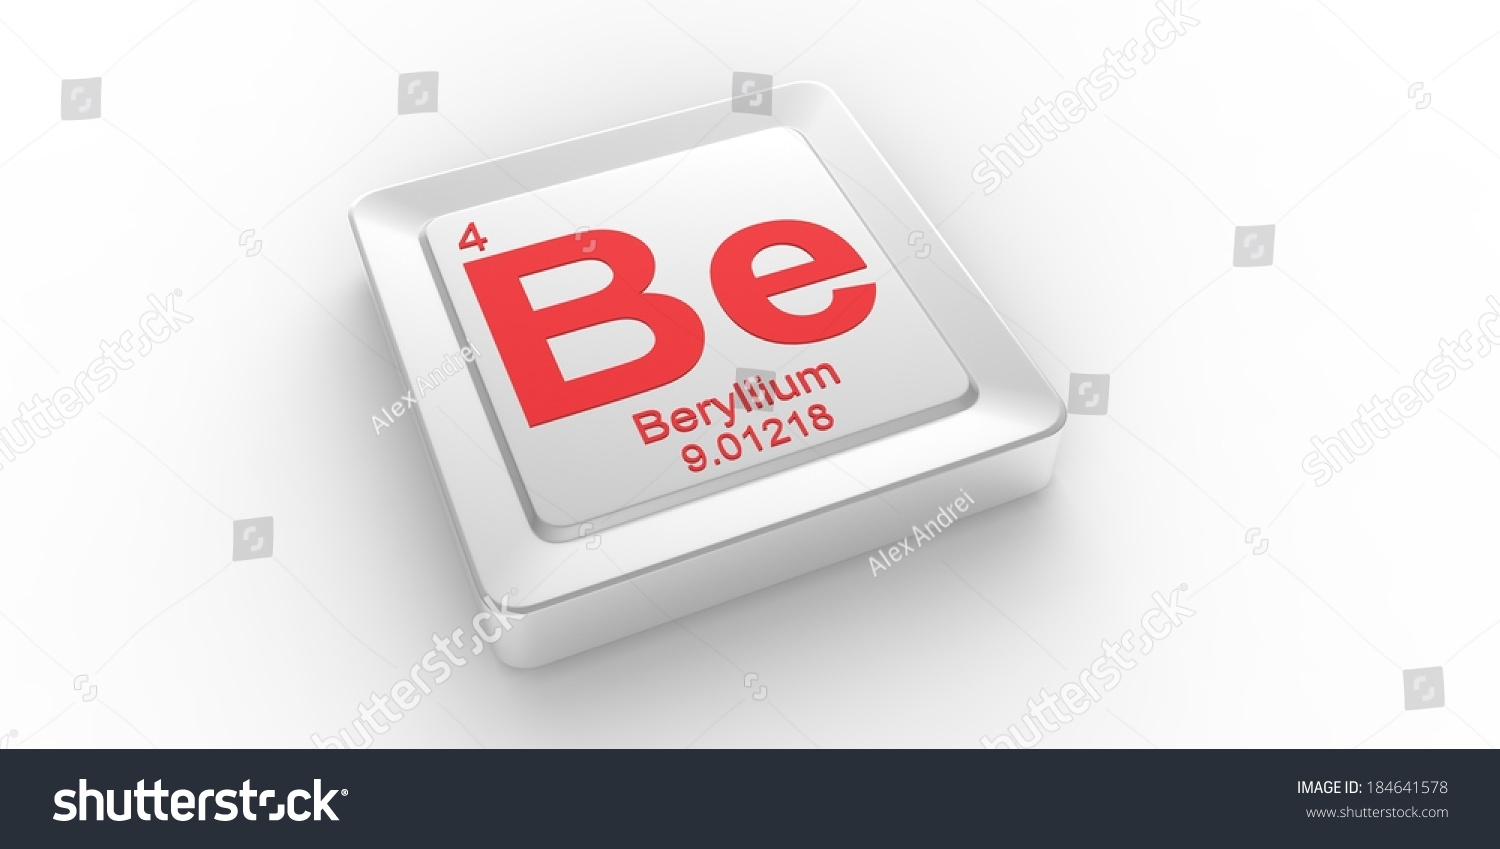 Be symbol 4 material beryllium chemical stock illustration be symbol 4 material for beryllium chemical element of the periodic table biocorpaavc Images